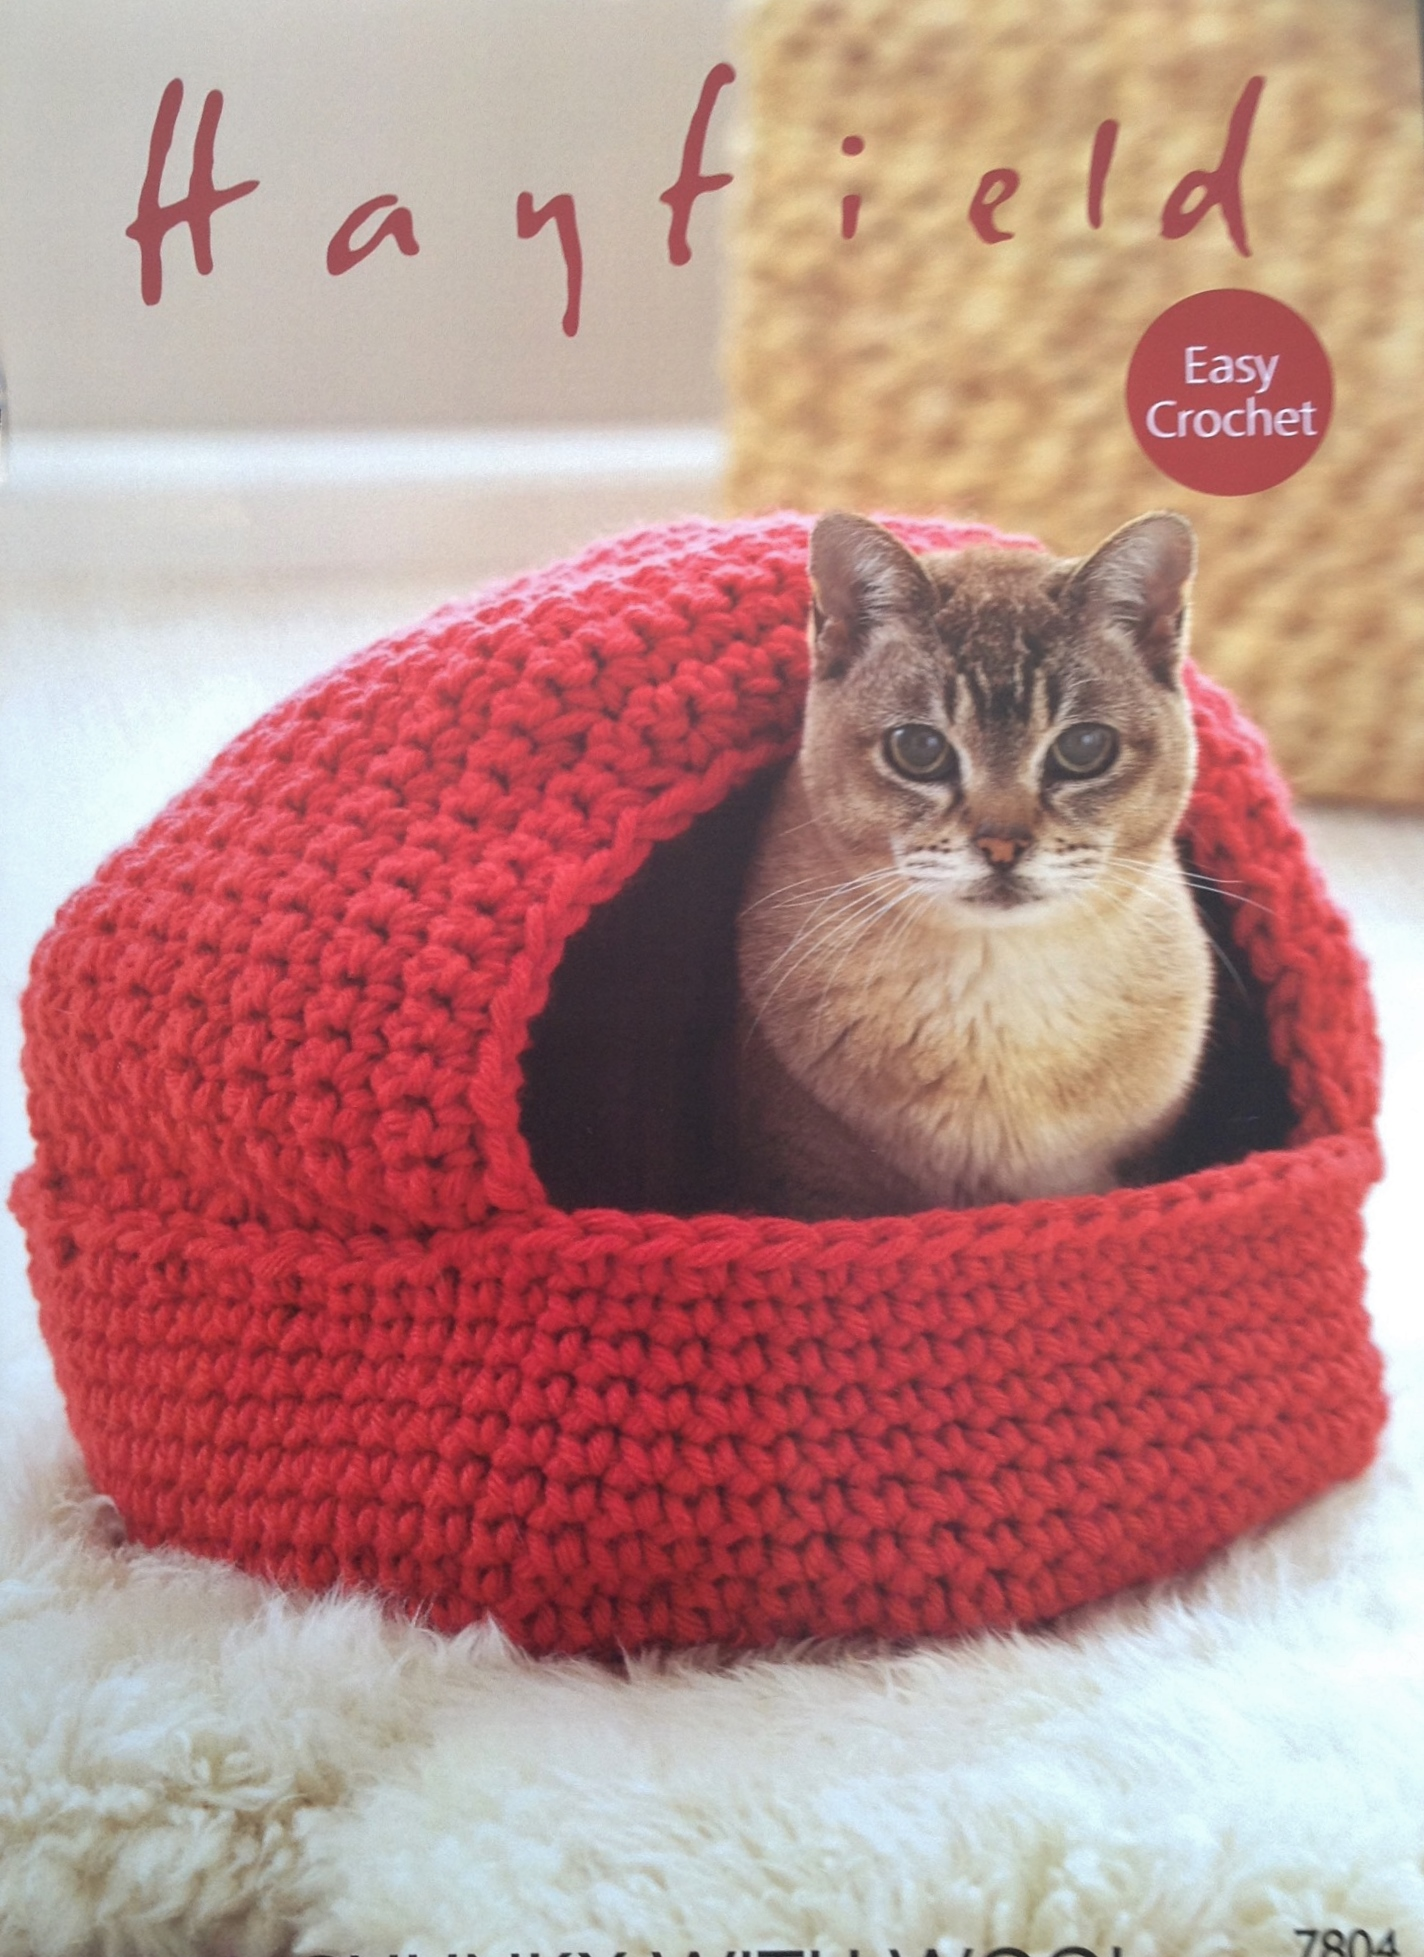 Easy crochet the sewing box crochet cat nest and storage baskets all in super chunky so quick these patterns are now available in store at the sewing box jeuxipadfo Gallery